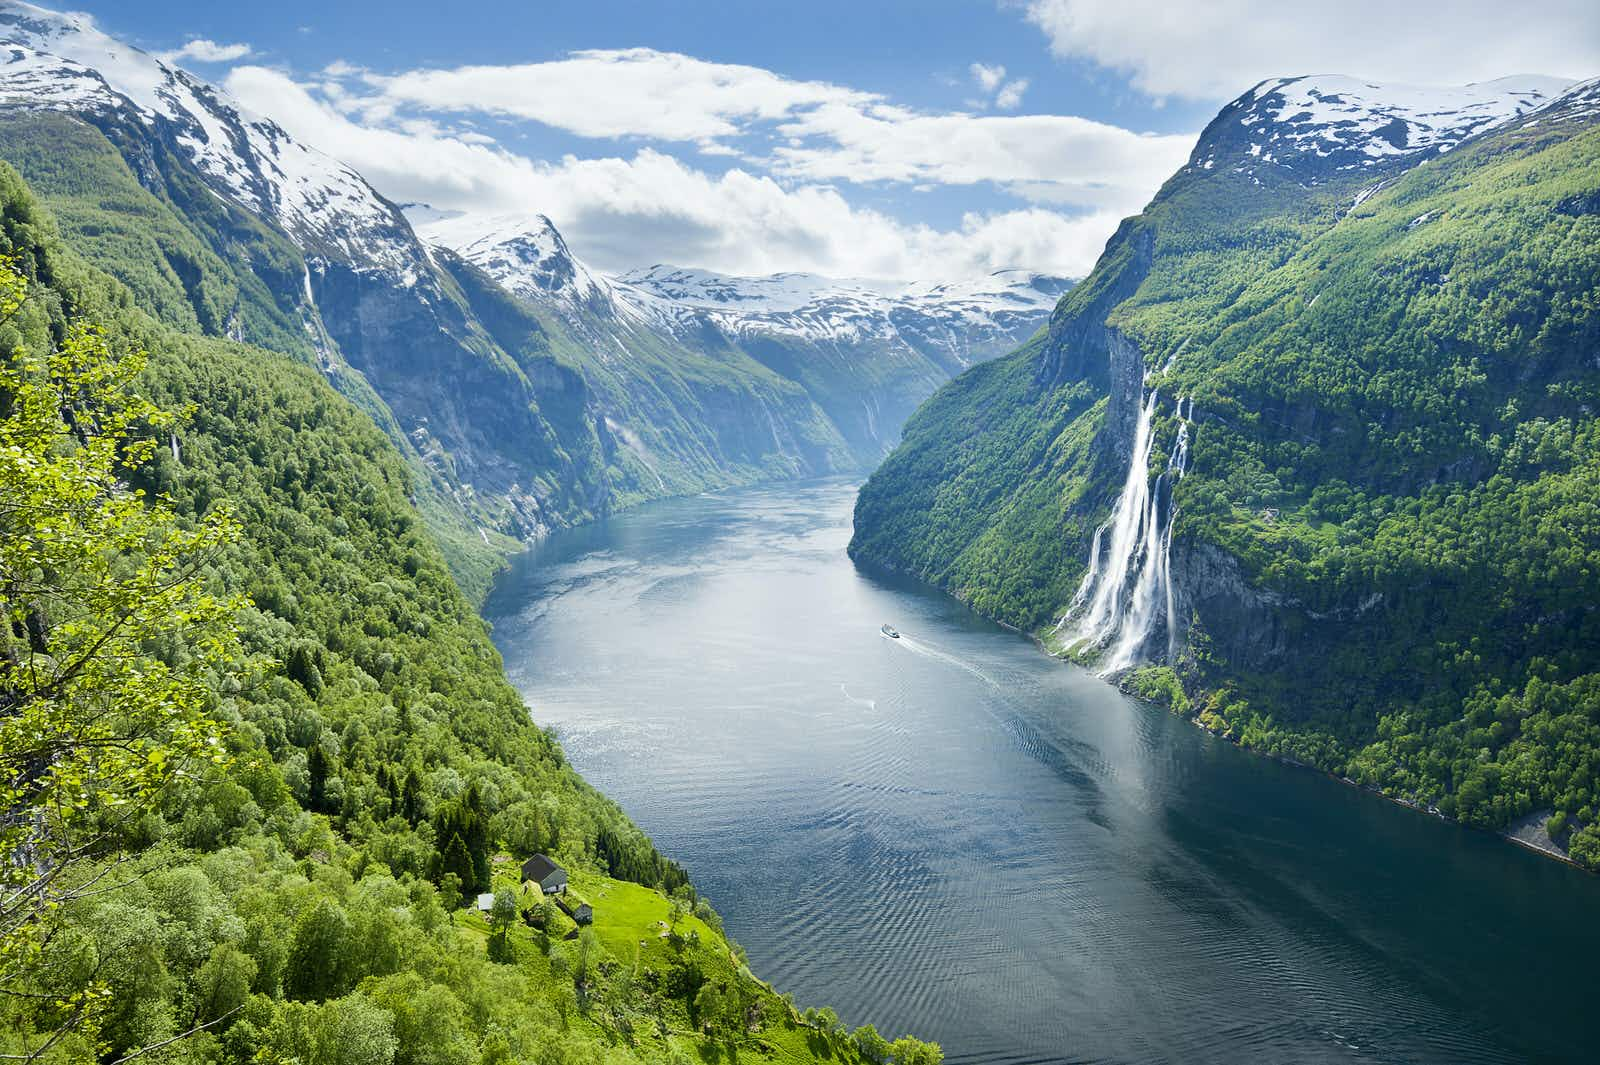 A voyage amongst Norway's fjords makes for an unforgettable experience © Justin Foulkes / Lonely Planet